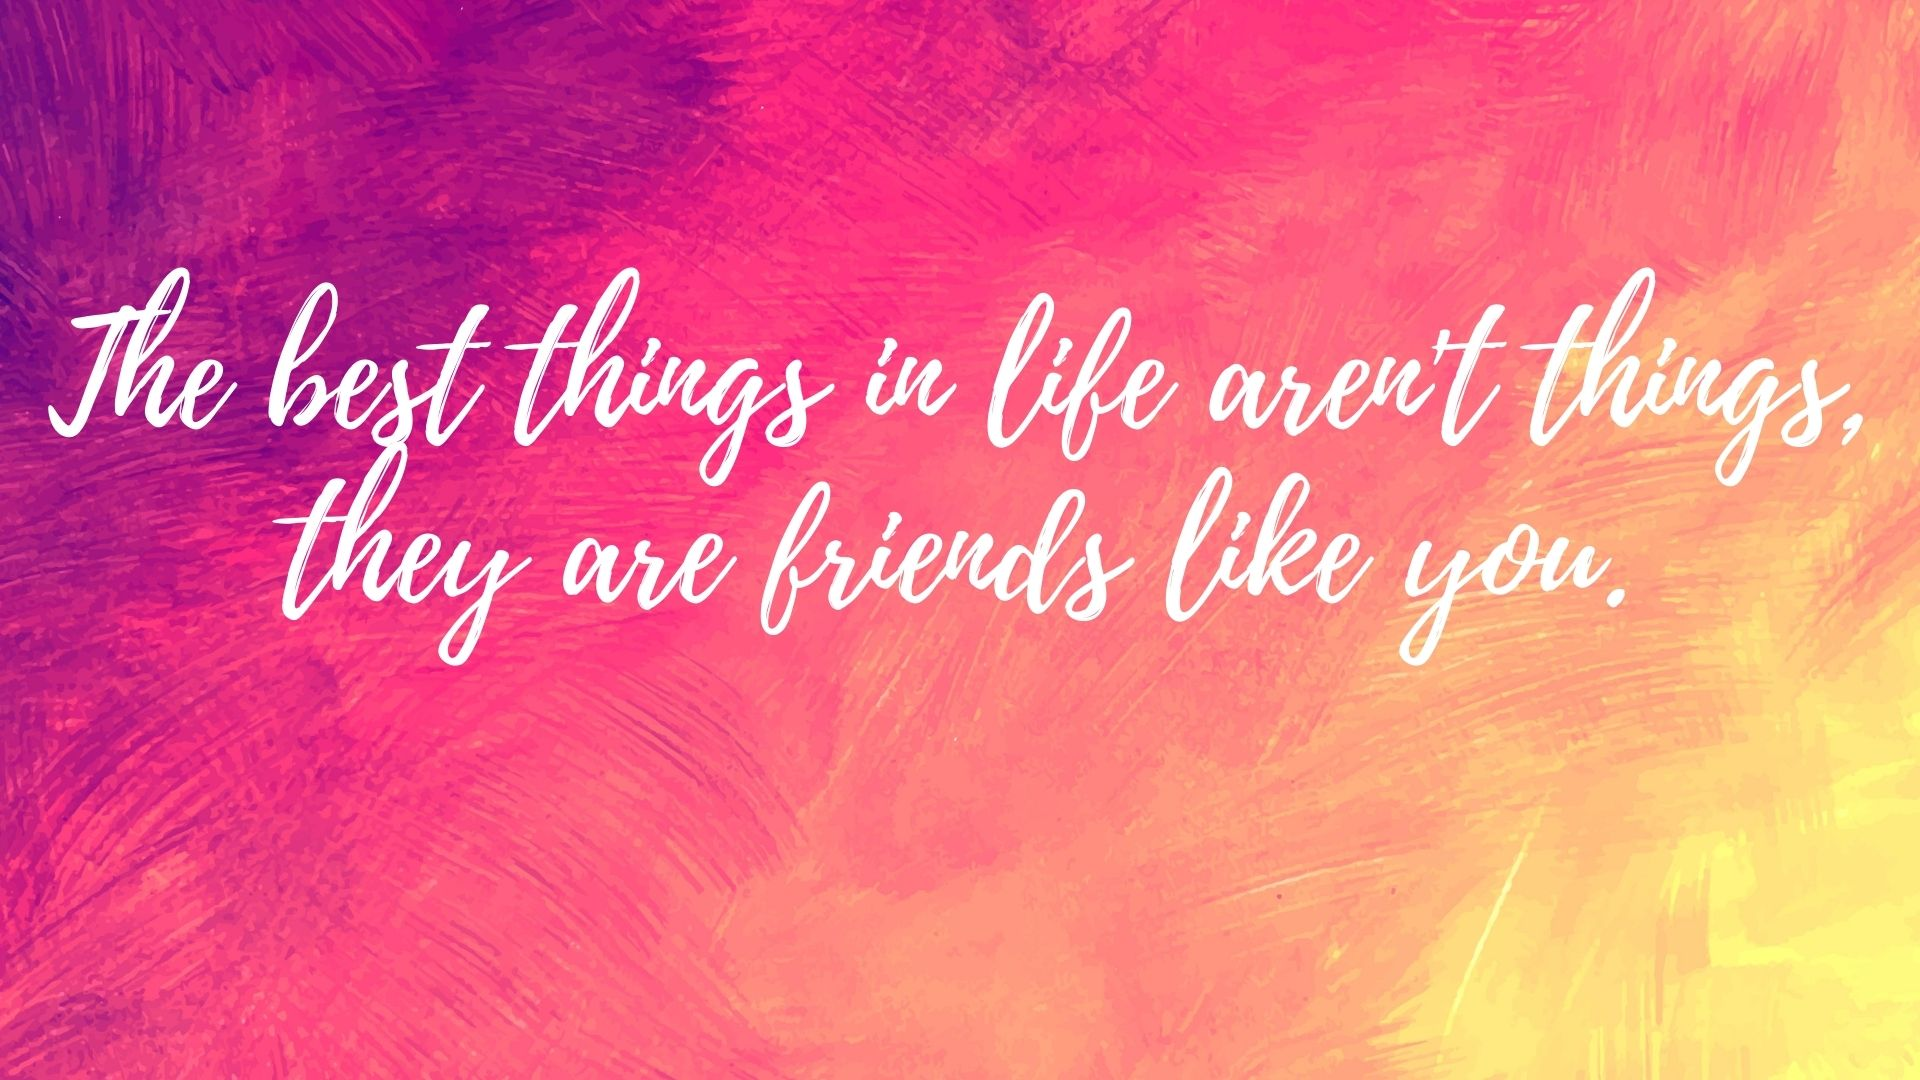 The best things in life aren't things, they are friends like you